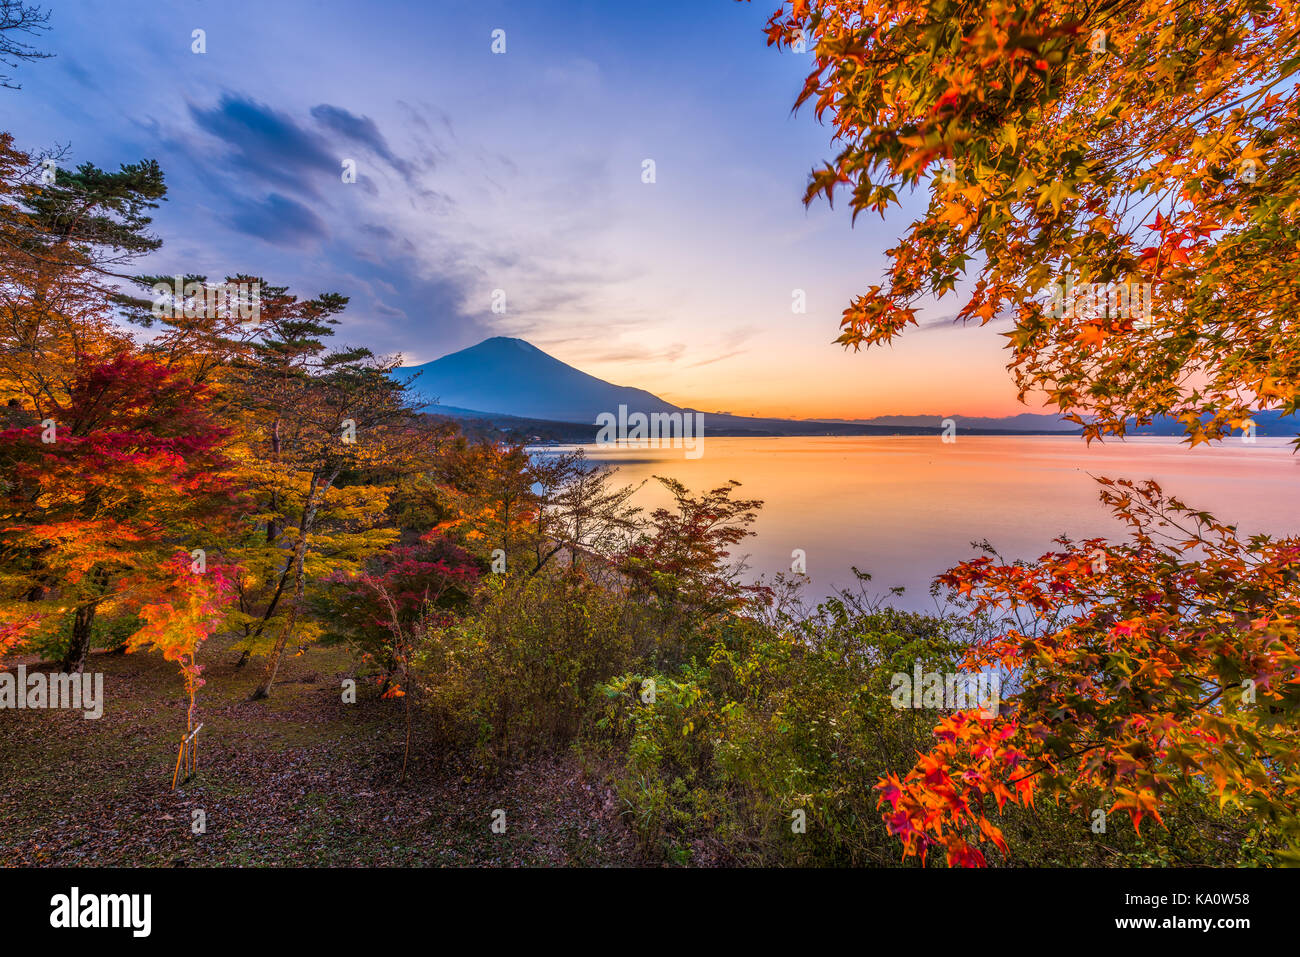 Lake Yamanaka, Yamanashi, Japan with Mt. Fuji during autumn season. - Stock Image